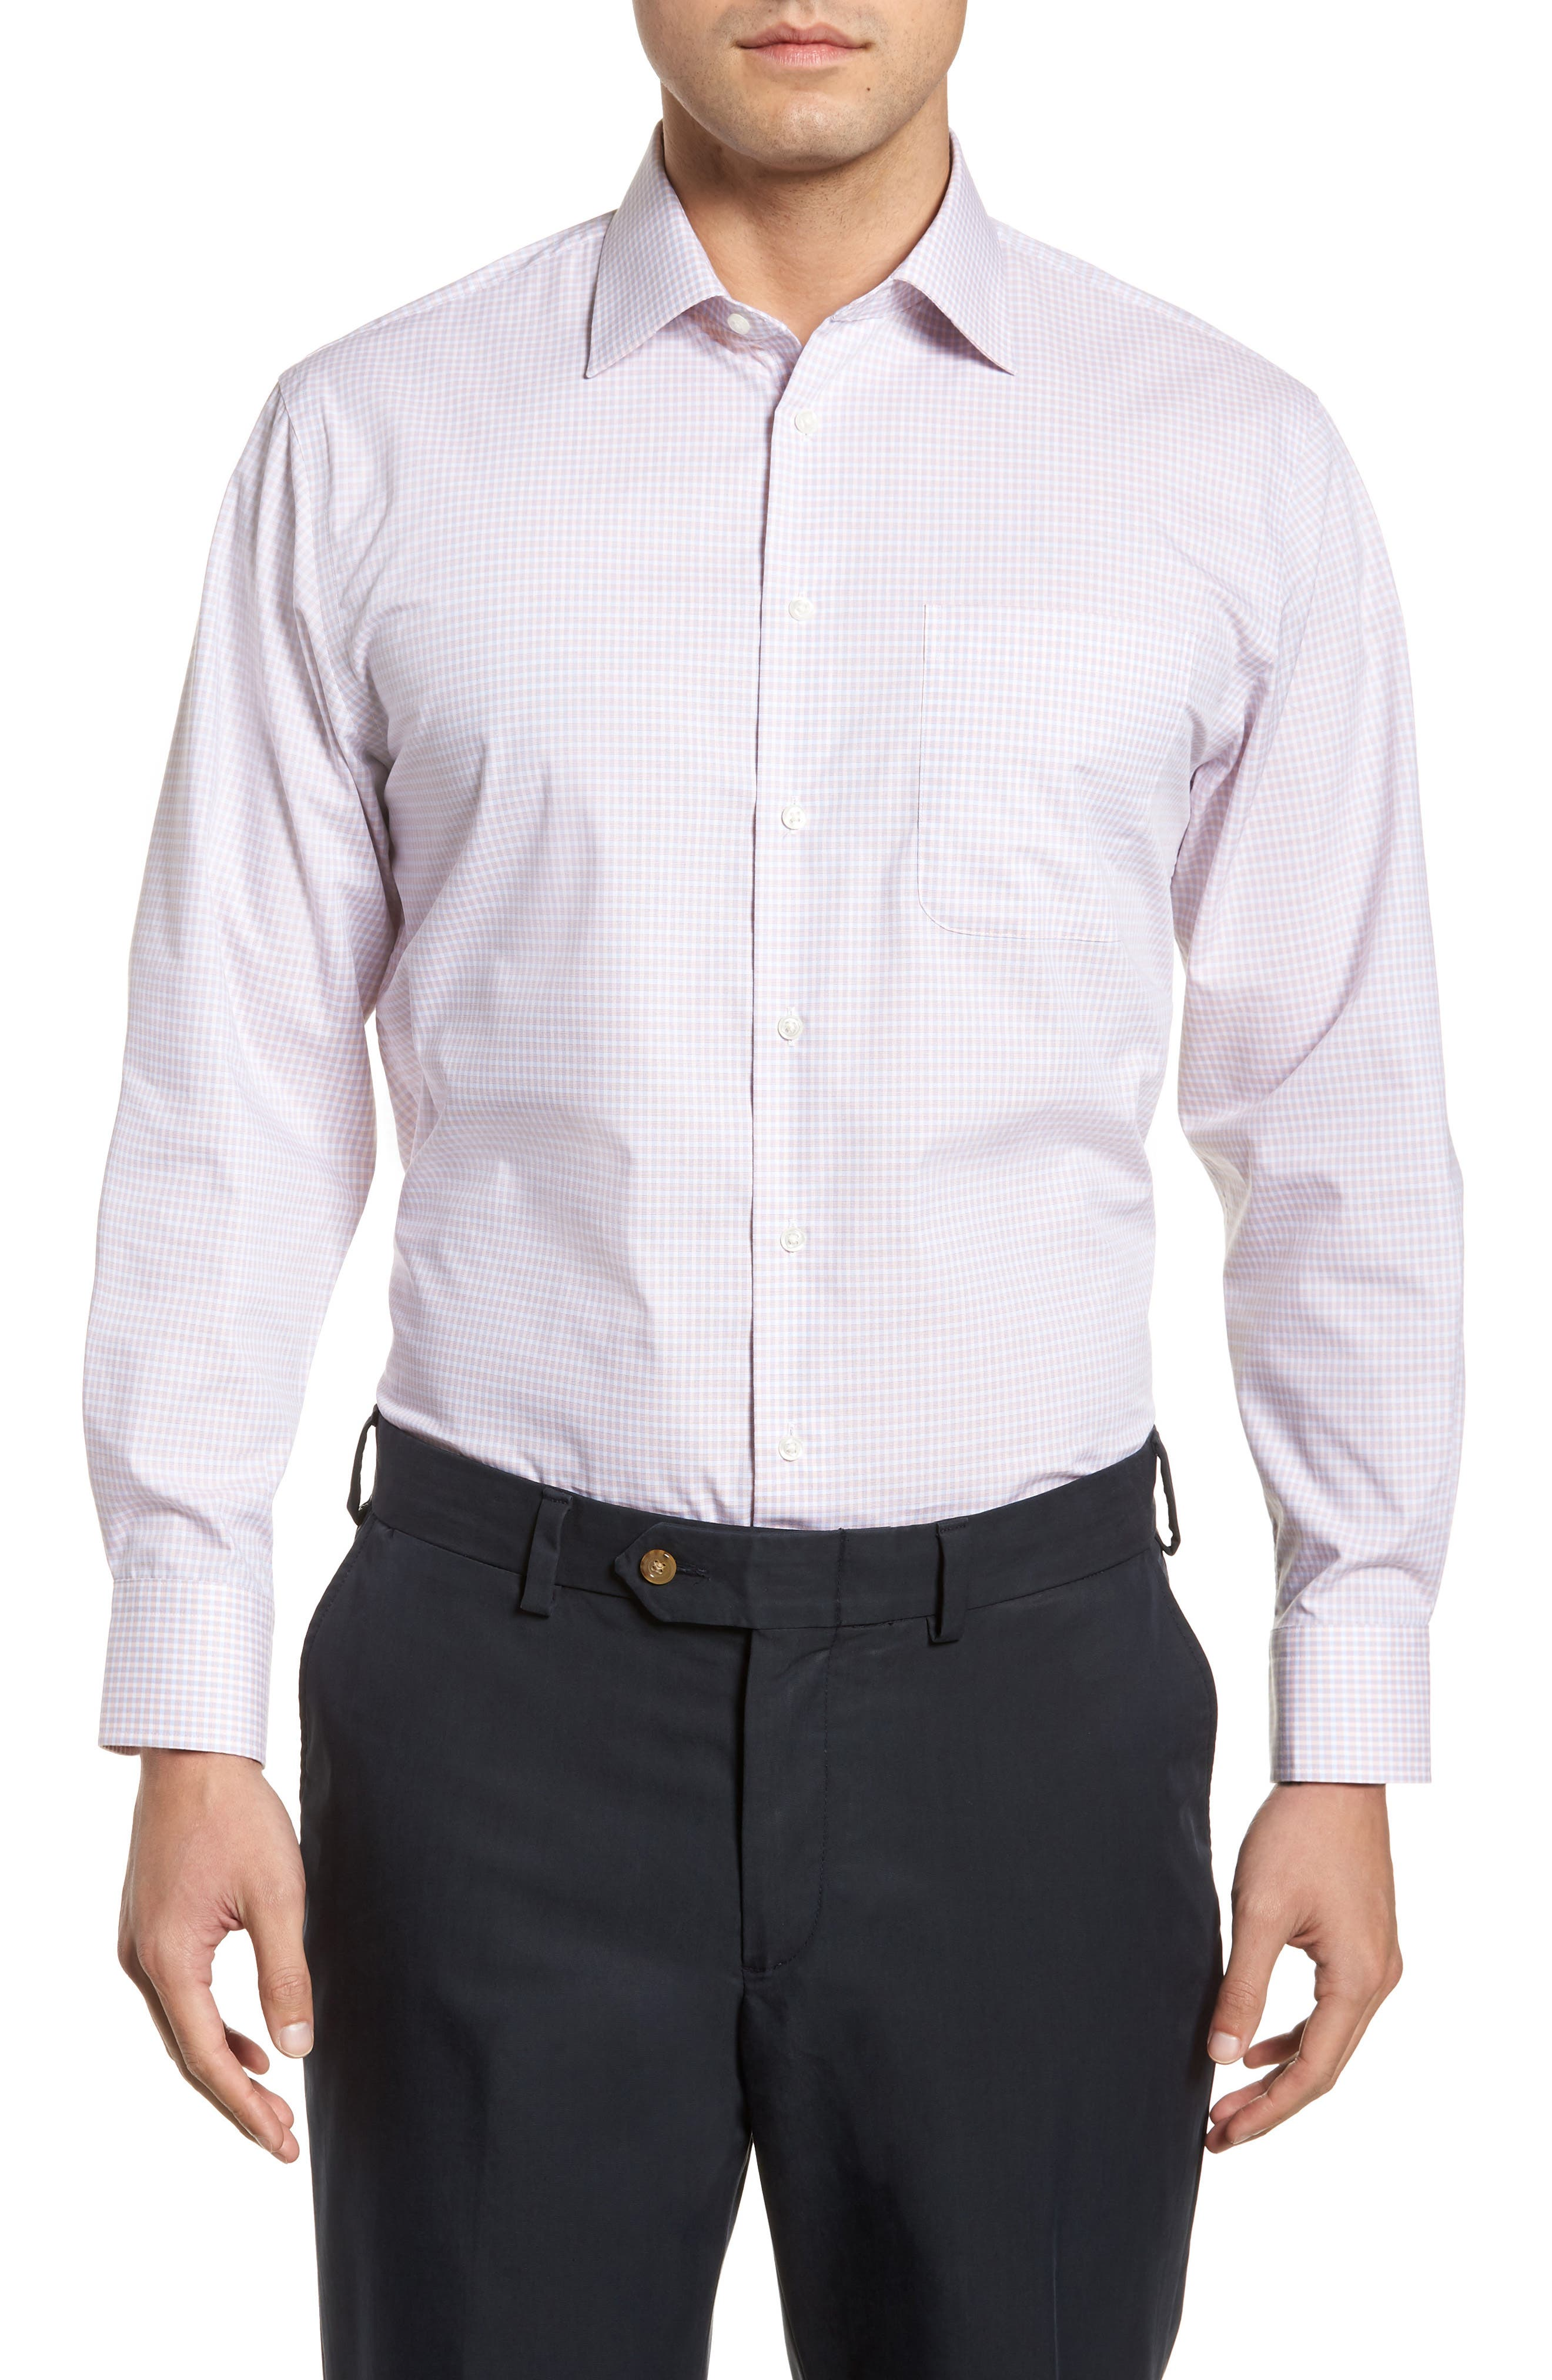 Alternate Image 1 Selected - Nordstrom Men's Shop Traditional Fit Non-Iron Check Dress Shirt